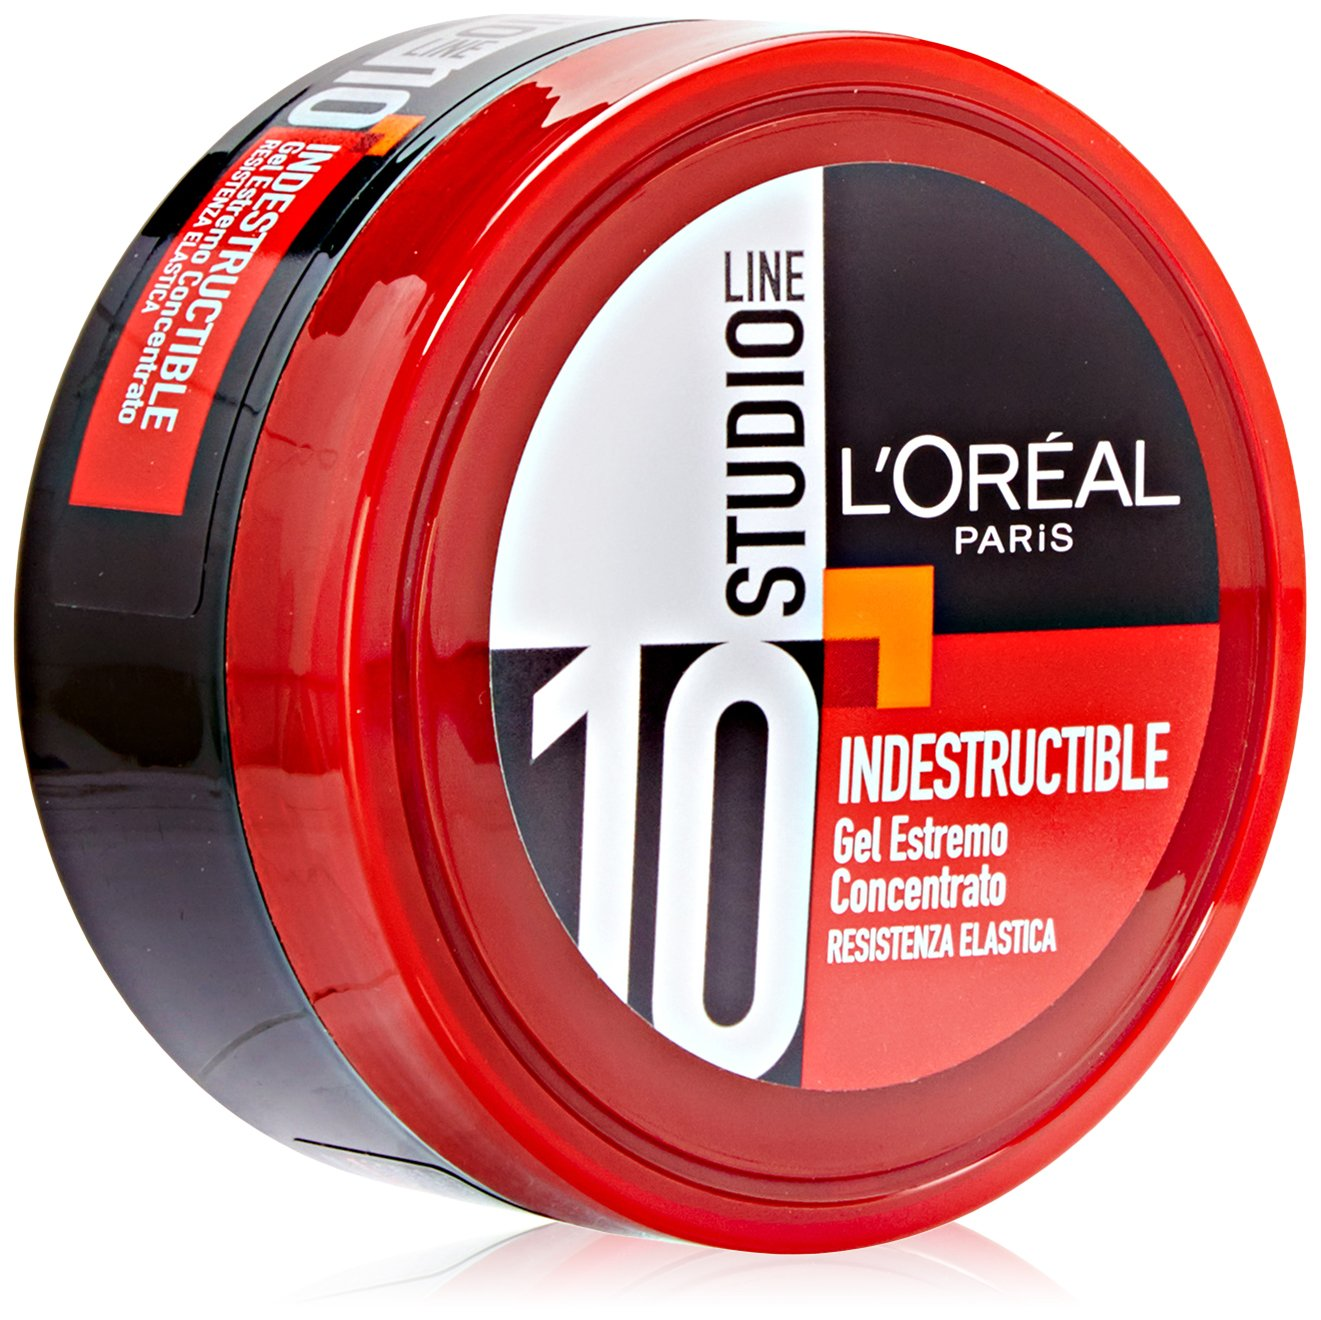 L'Oréal Paris Studio Line Indestructible Gel Estremo Concentrato in Vaso, 150 ml L' Oreal A7510640